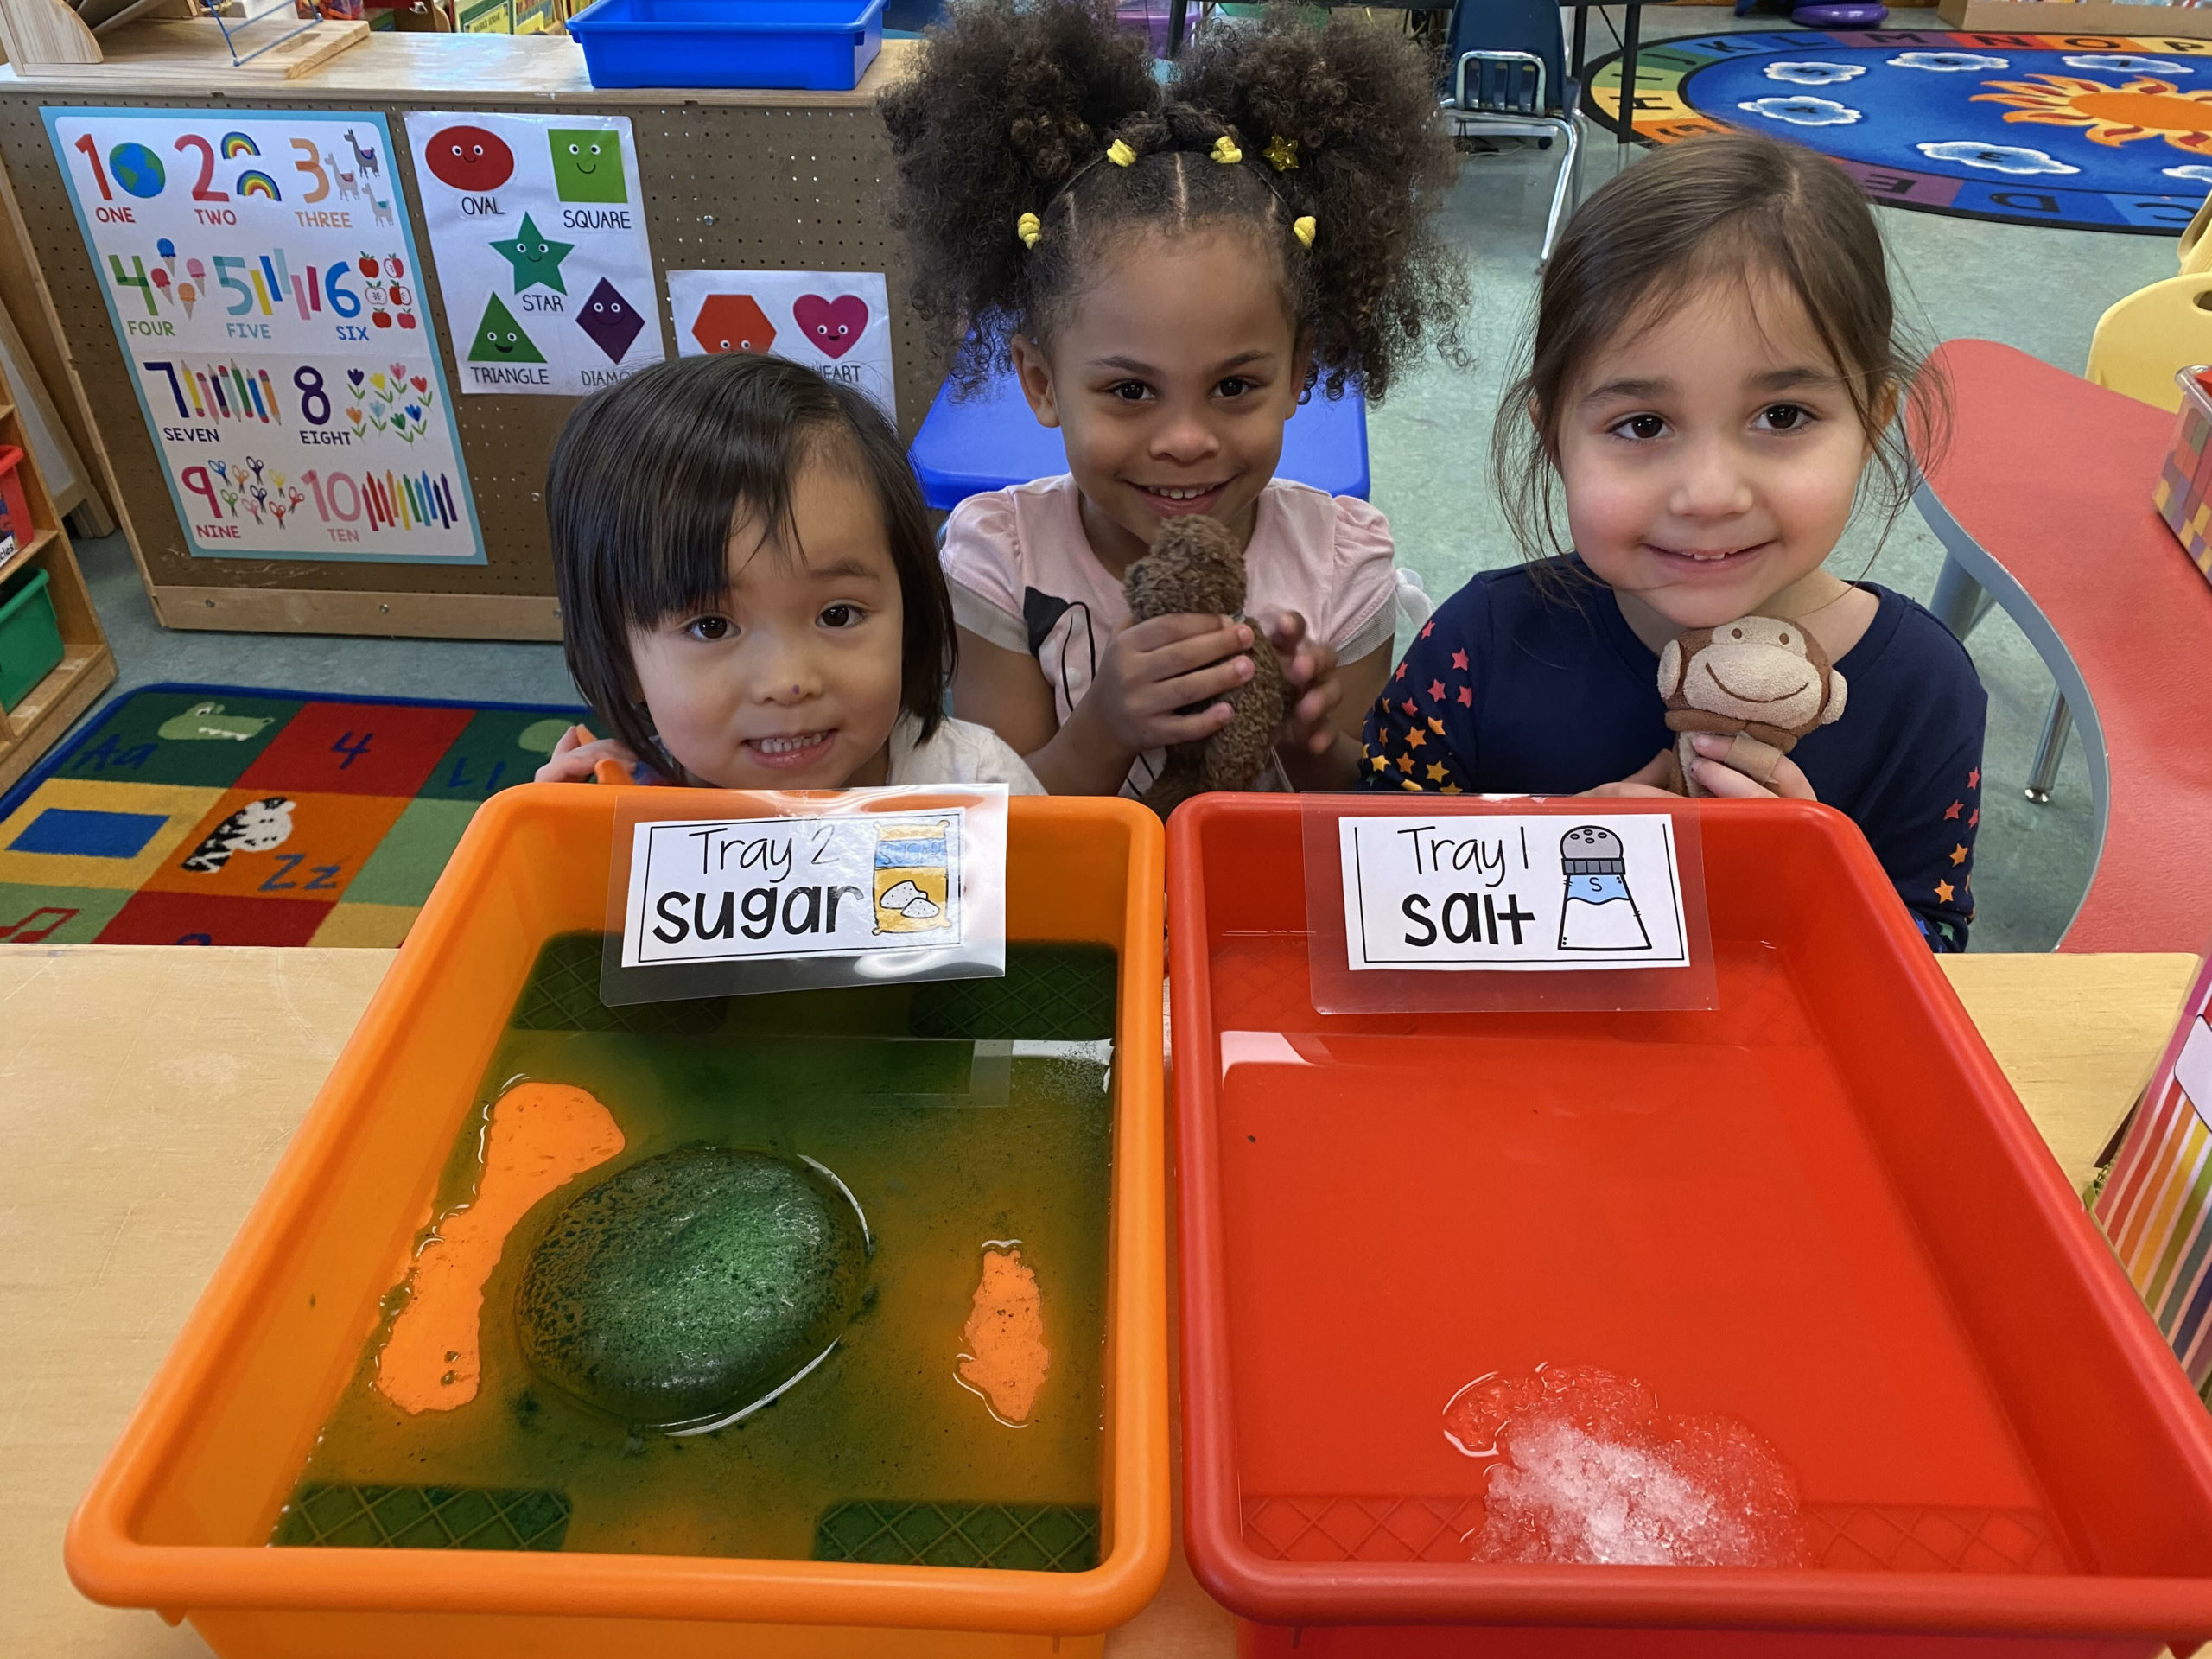 Bridgehampton School pre-K students, including from left, Meia Verzosa, Gianna Walker and Isabel Leon, conducted a science experiment in which hey explored whether salt or sugar would melt an ice block faster. They first made a prediction by casting a vote on a salt or sugar T-chart. Then, they observed the salt and sugar covered ice blocks and drew a picture of their observations. The scientific experiment resulted in learning that the ice melted quicker using the salt.